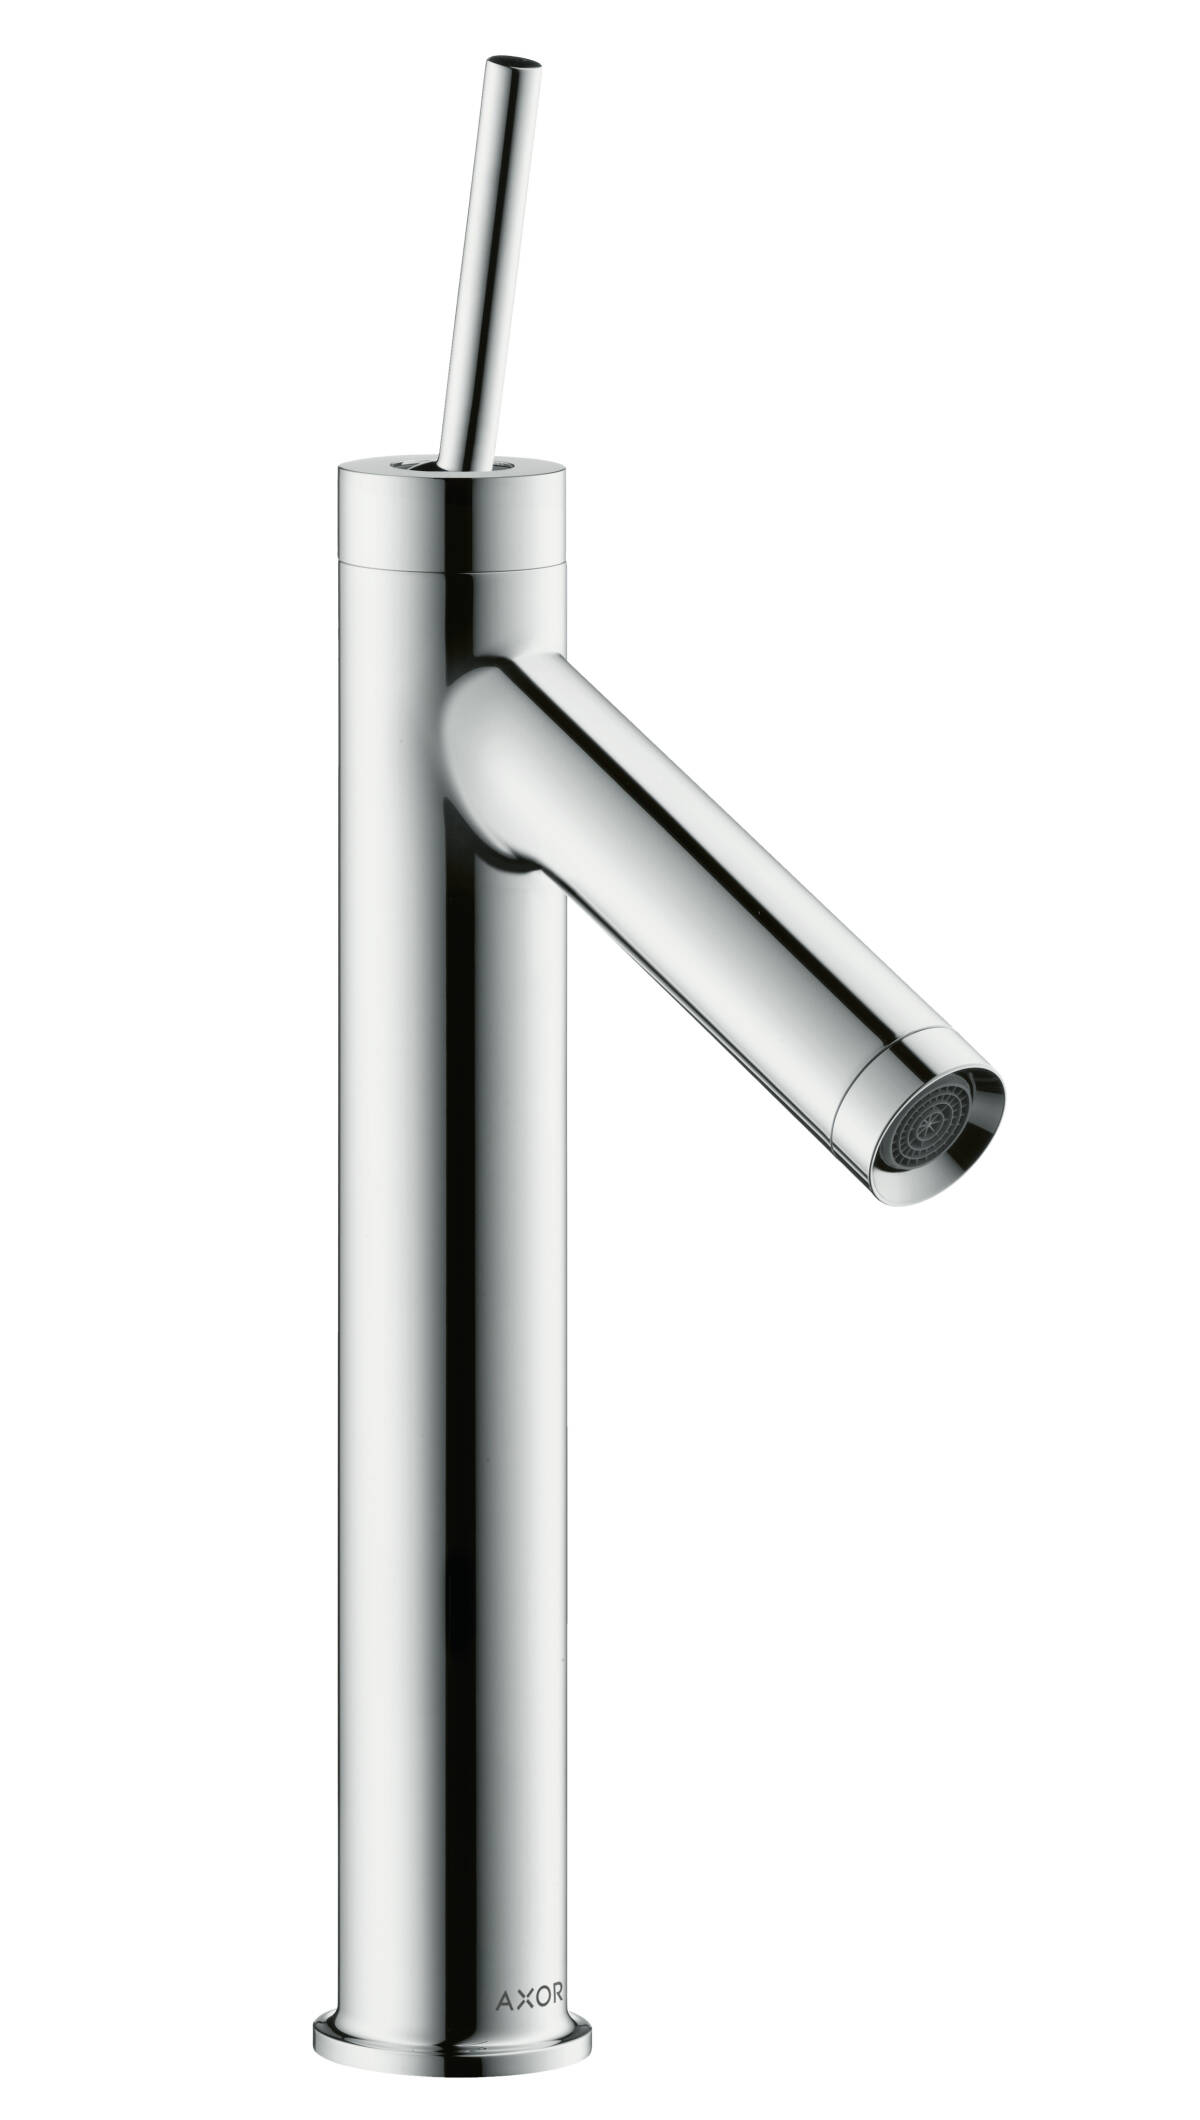 Single lever basin mixer 170 with pin handle and waste set, Chrome, 10123000